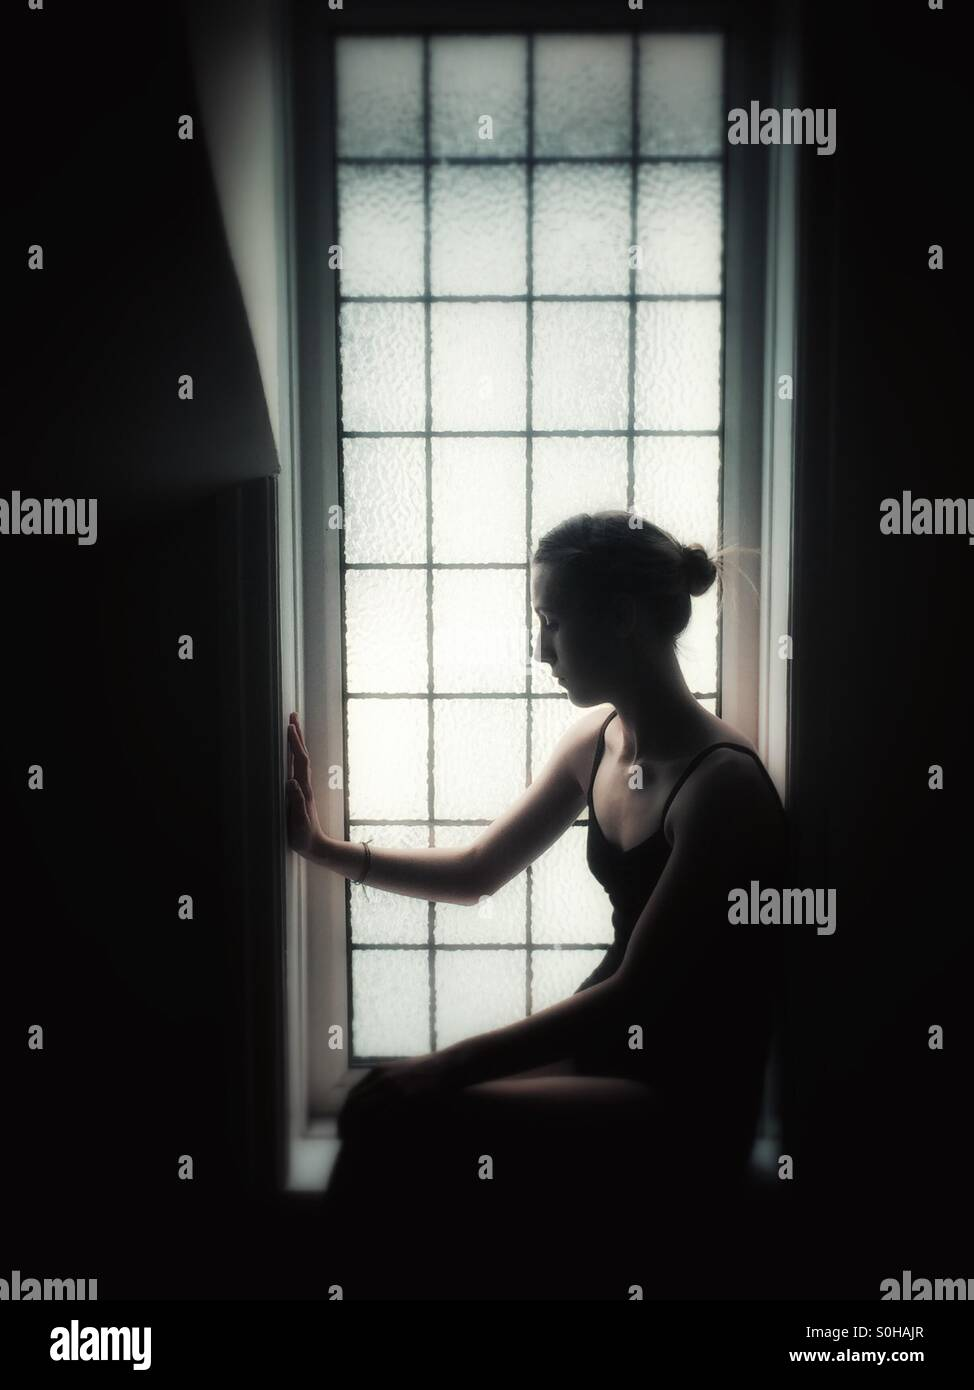 Girl thinking - Stock Image